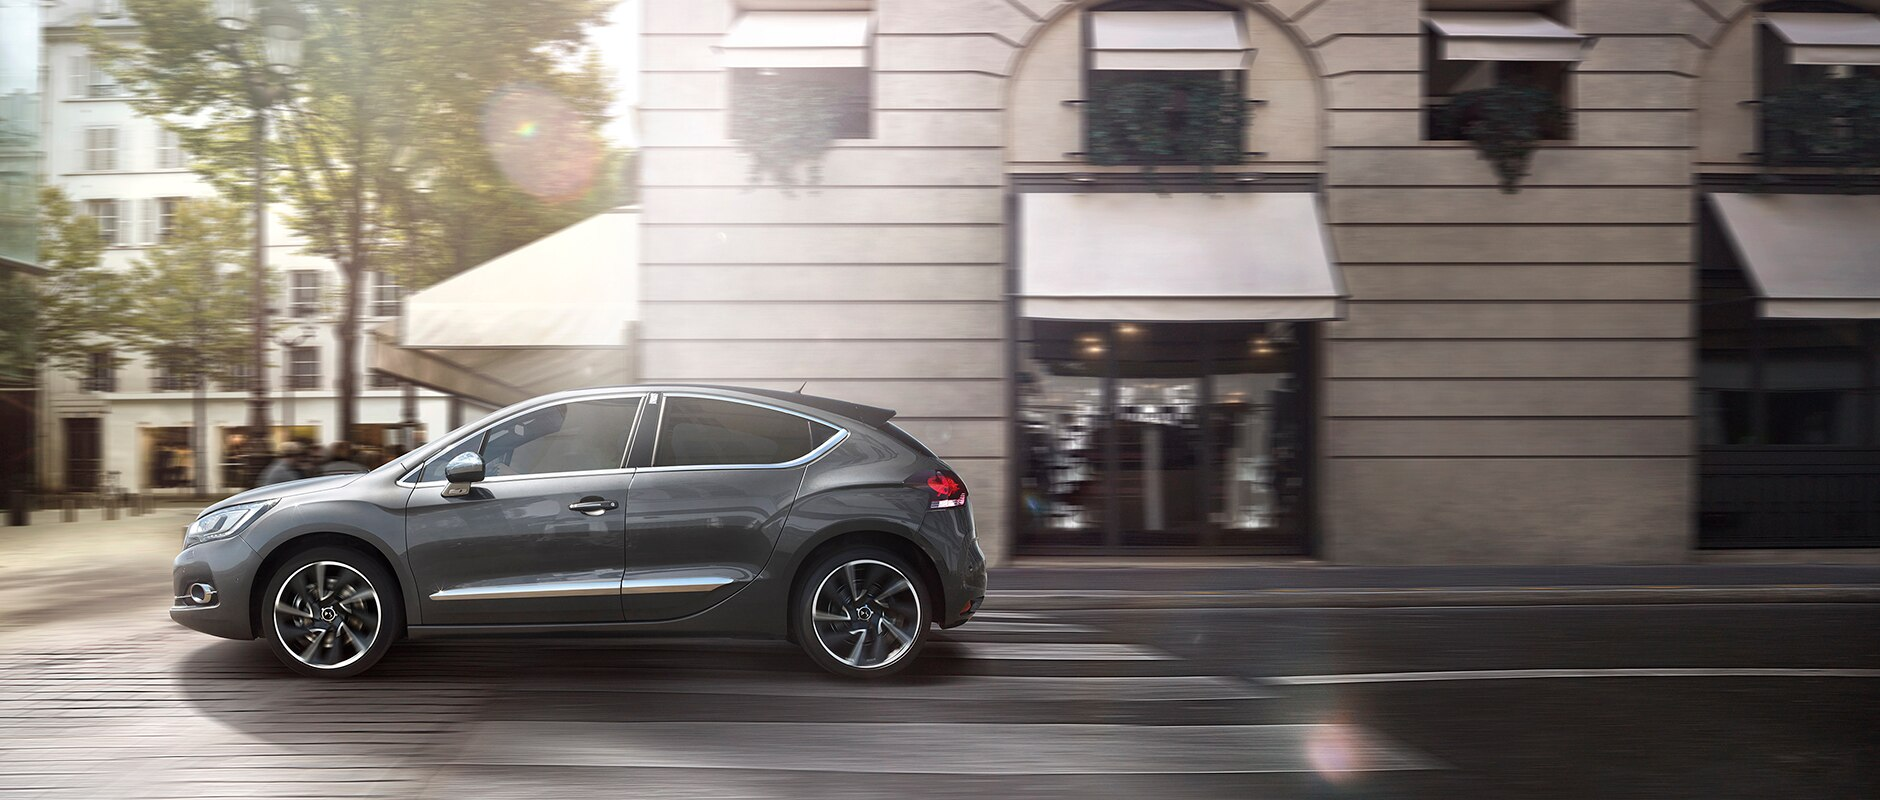 New DS 4 - détails - Technology for safety